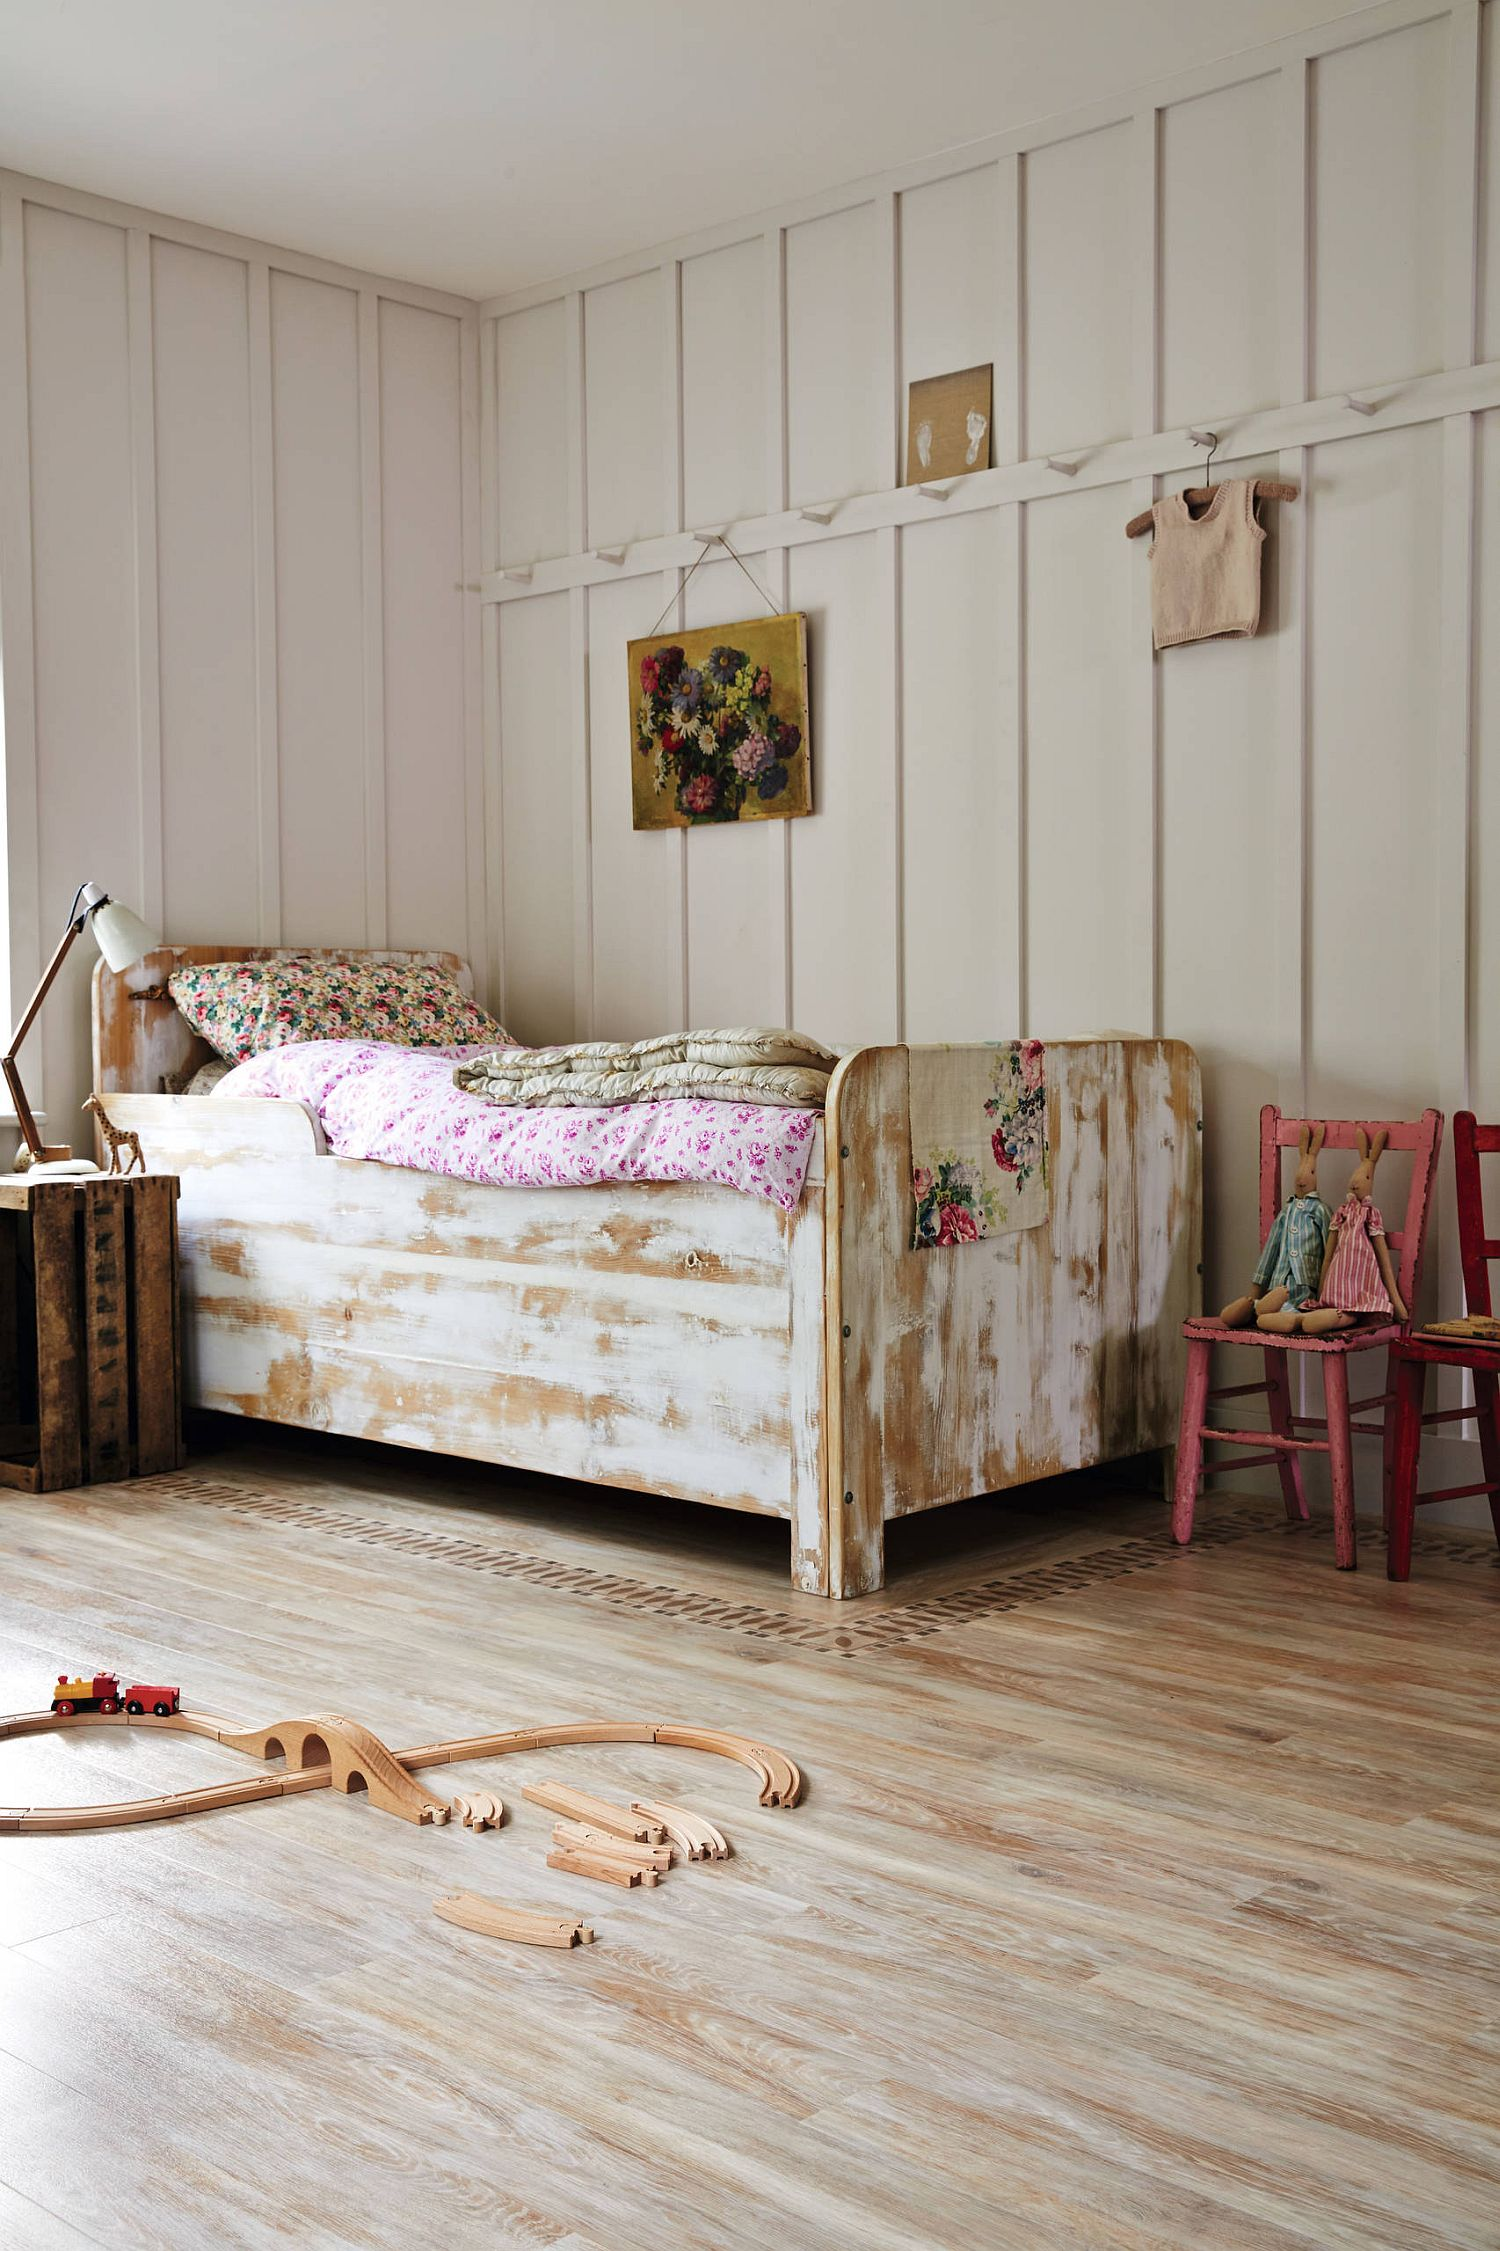 Frame of the bed adds to the shabby chic style of the room with its unpolished finish